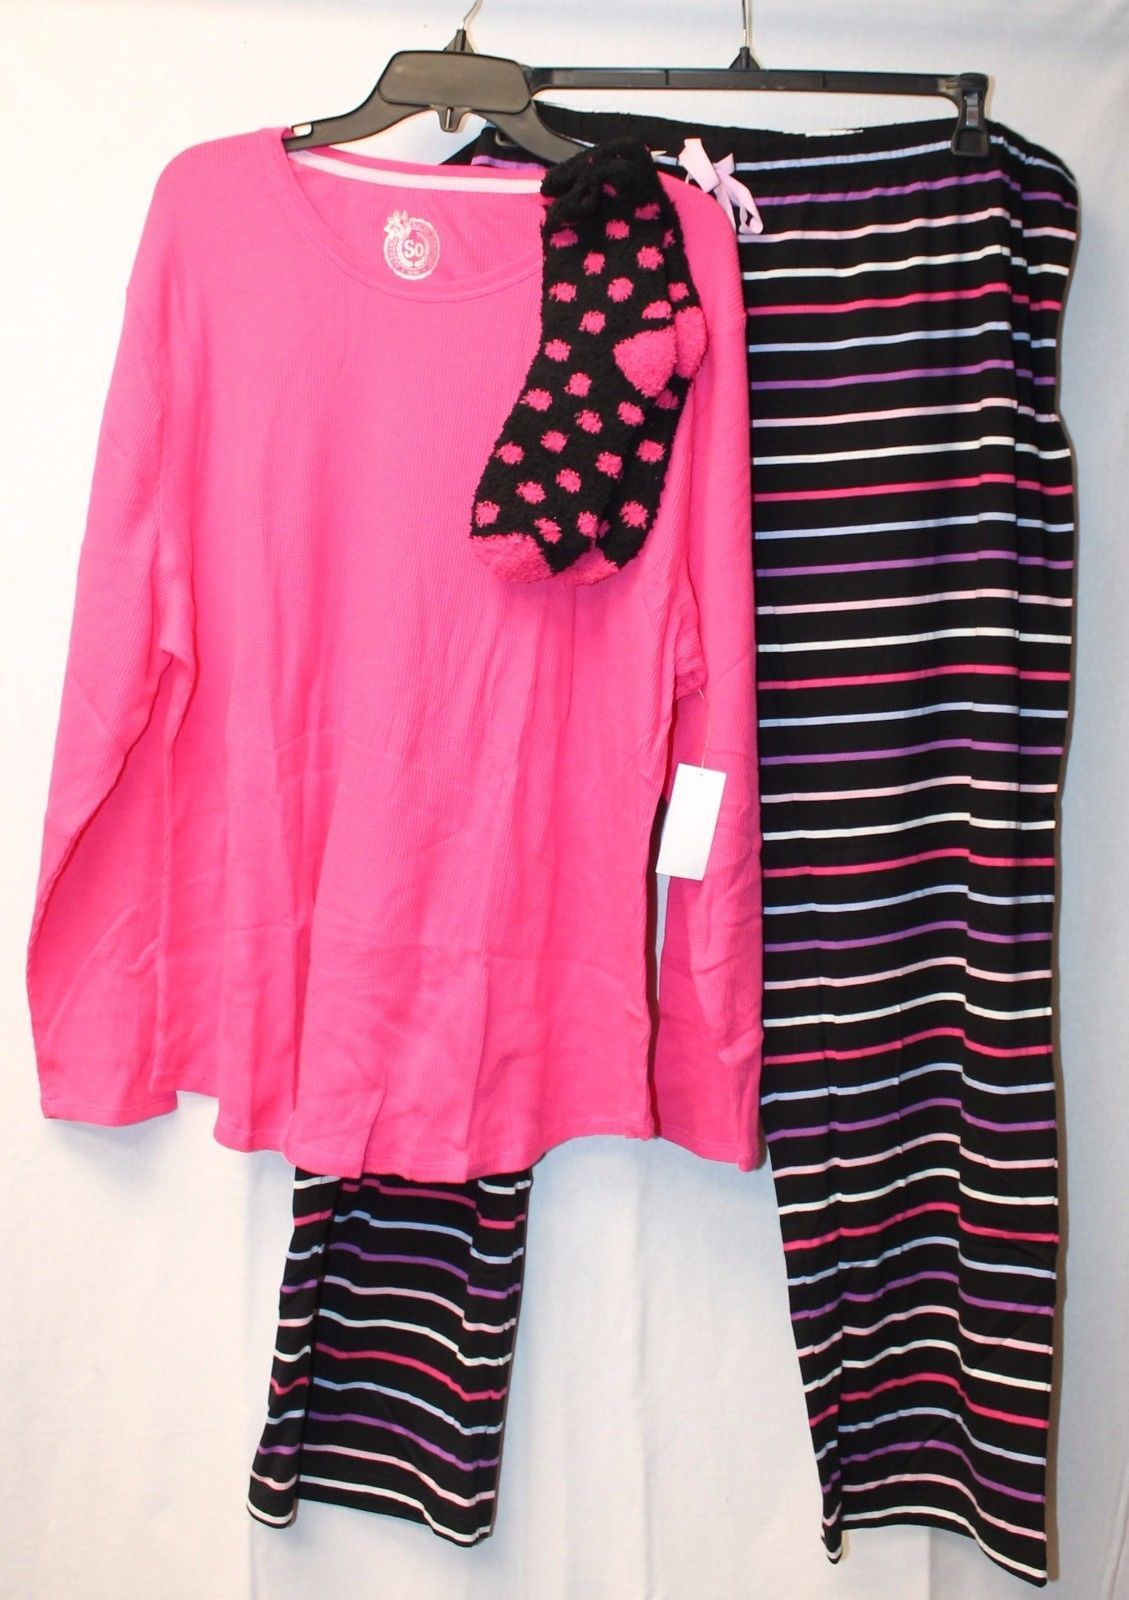 NEW WOMENS PLUS SIZE 3X 3XL SO 3PC GEOMETRIC THERMAL KNIT PAJAMAS PAJAMA SET PJs - $24.19